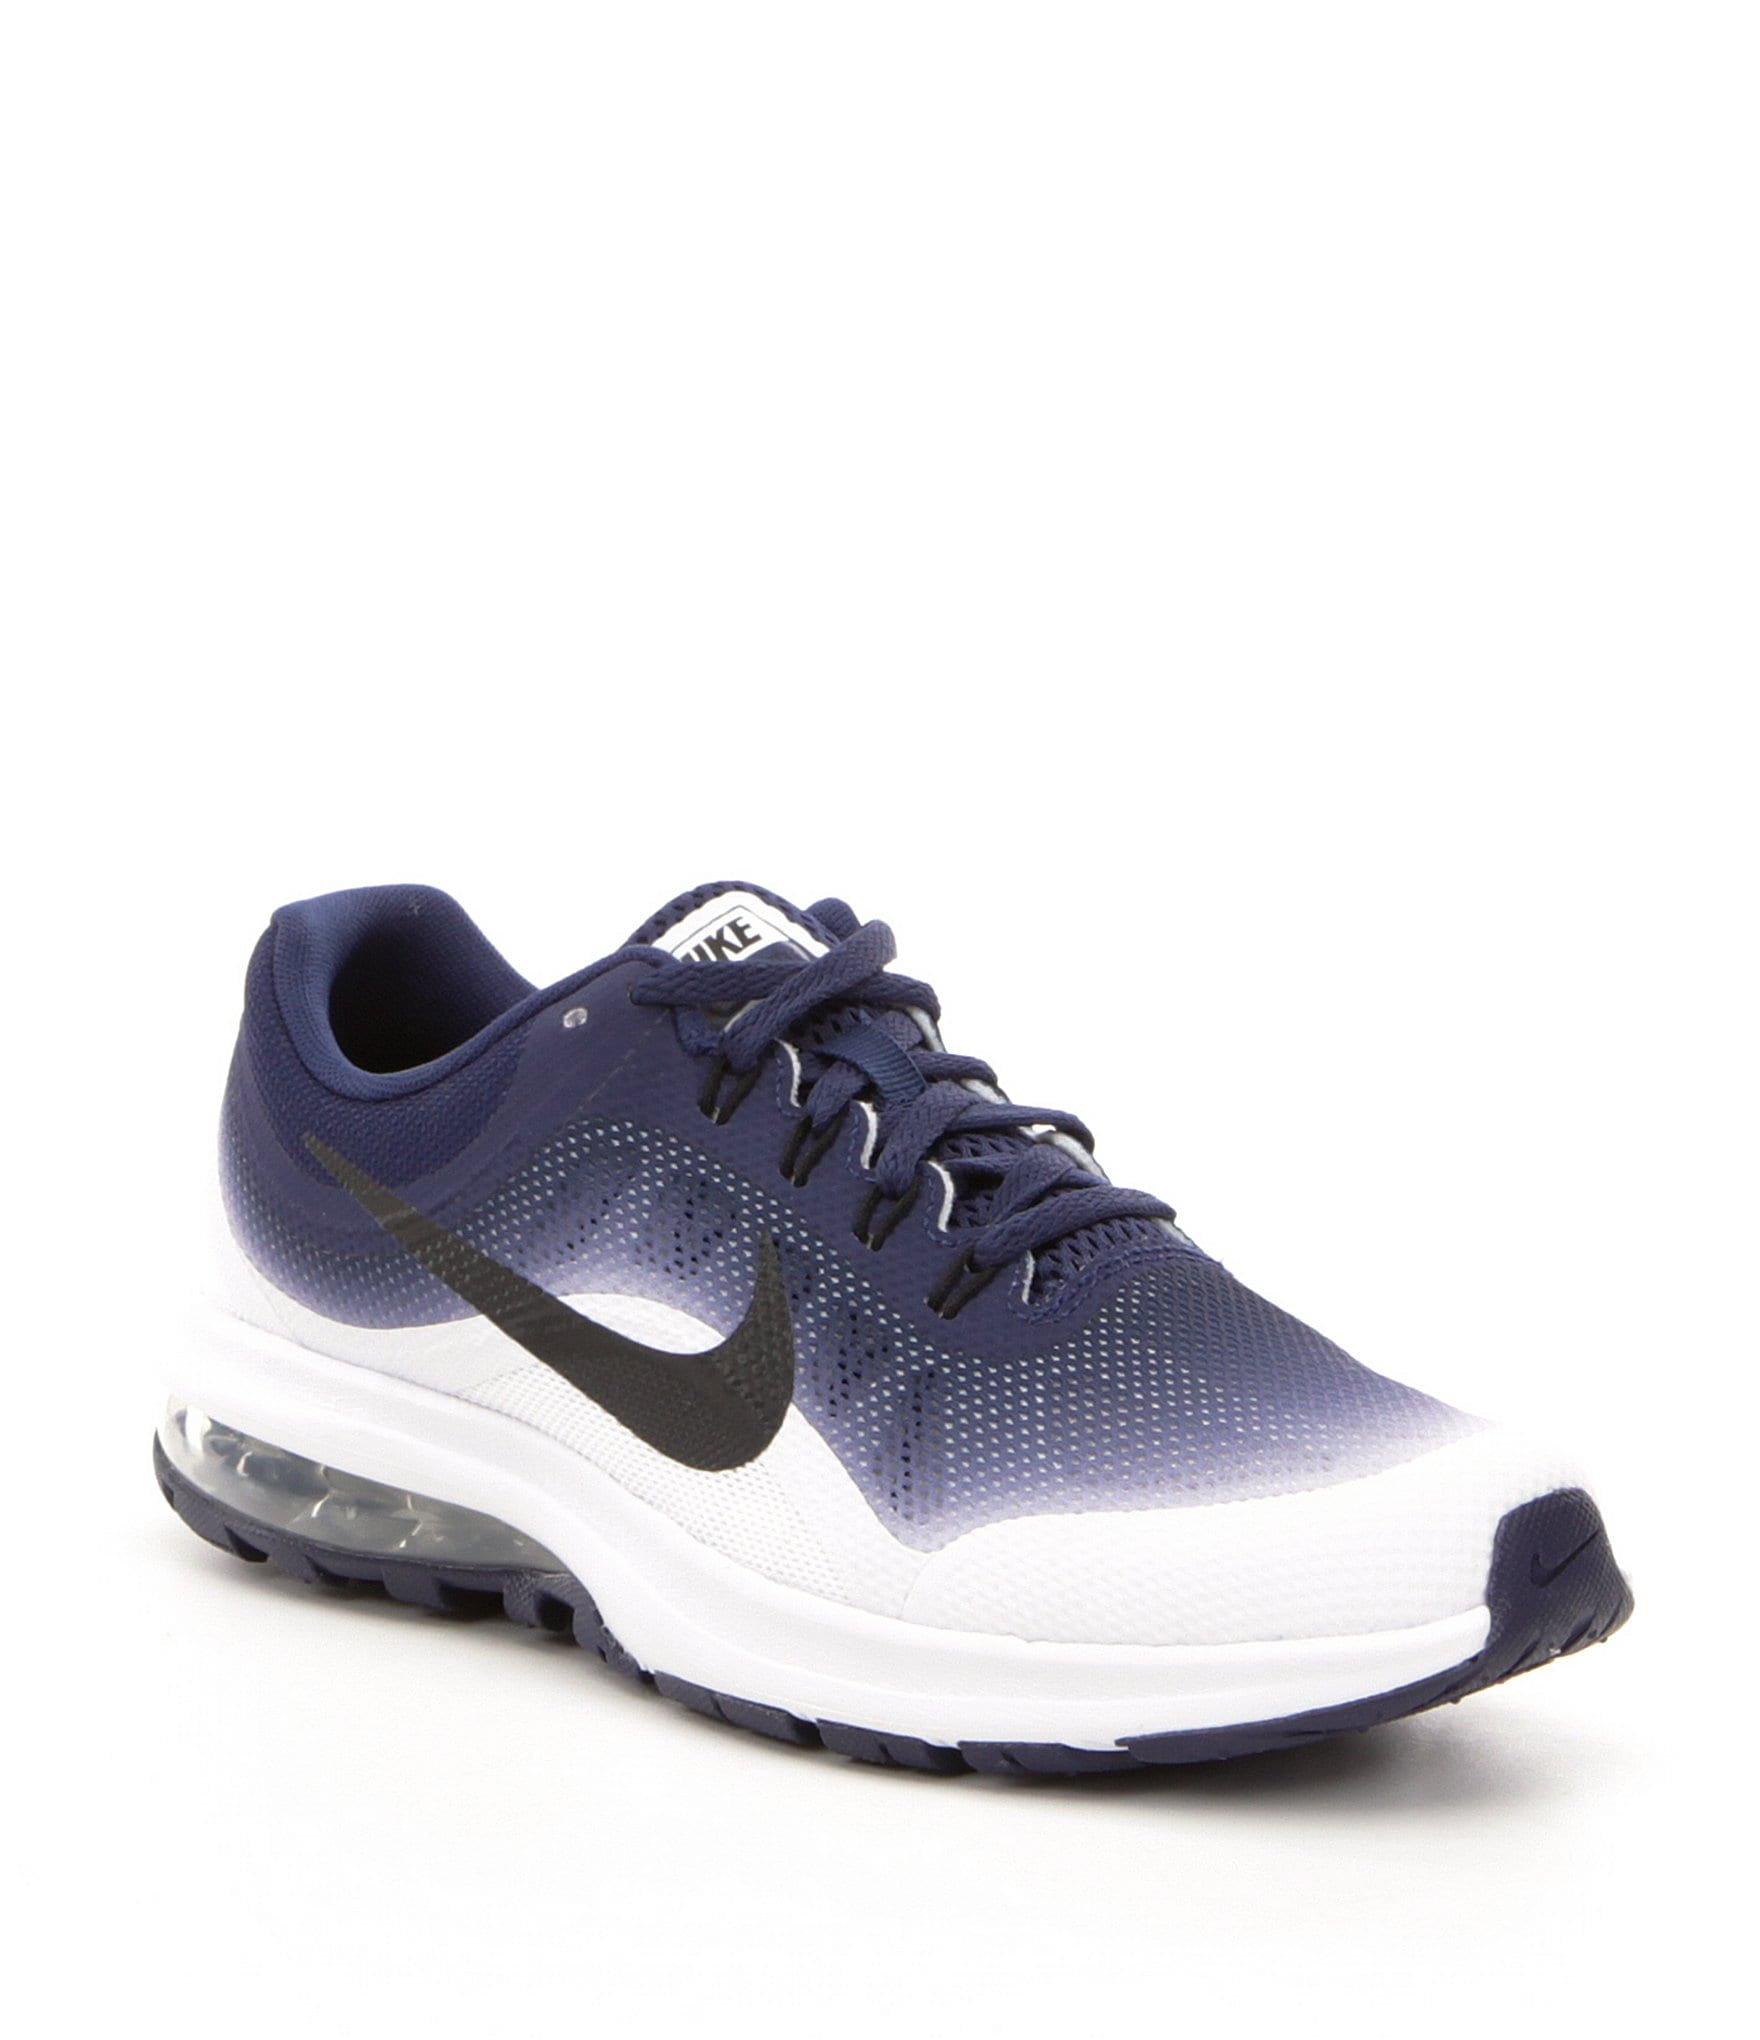 Nike Air Max Running Shoes Review